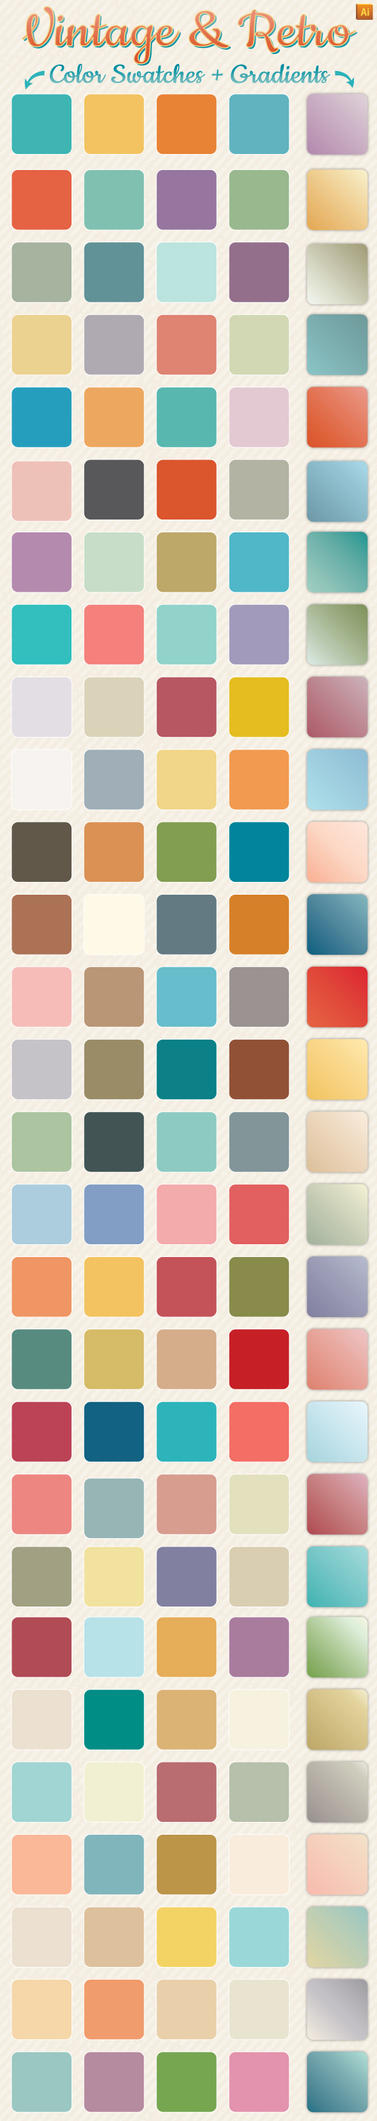 Vintage and Retro Gradients and Color Swatches by Jeremychild